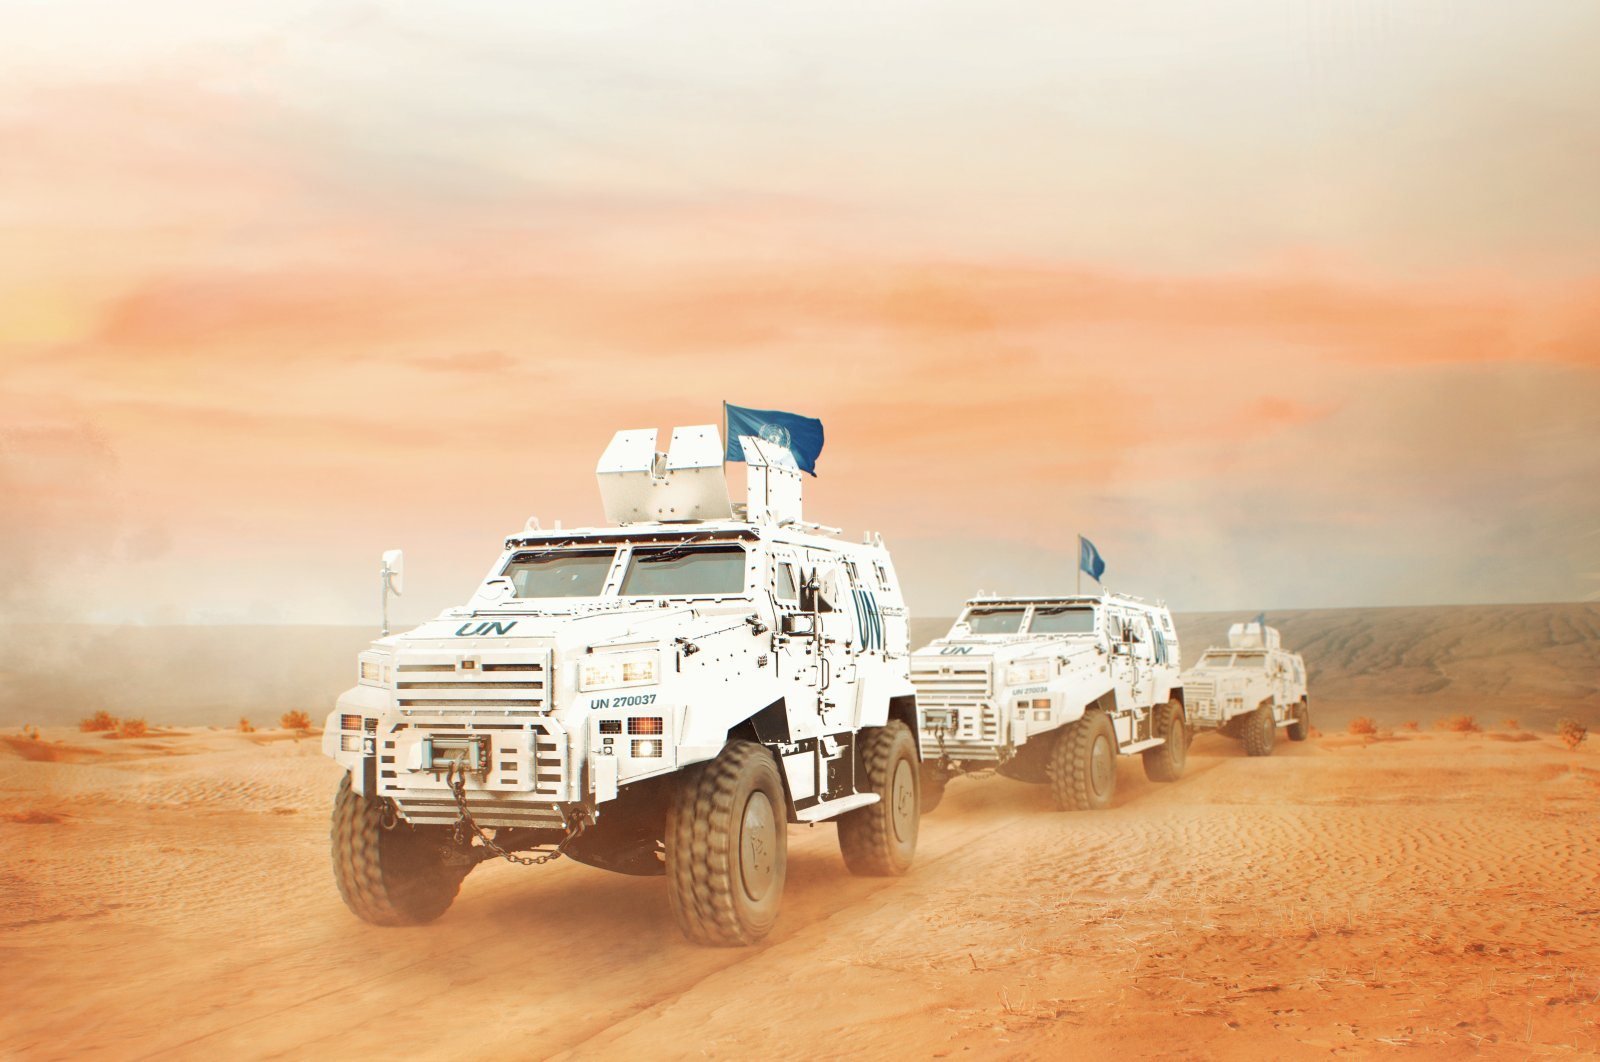 Ejder Yalçın 4x4 vehicles tailored for U.N. Peacekeeping seen in the photo provided on March 10, 2021. (Photo by Nurol Makina via AA)